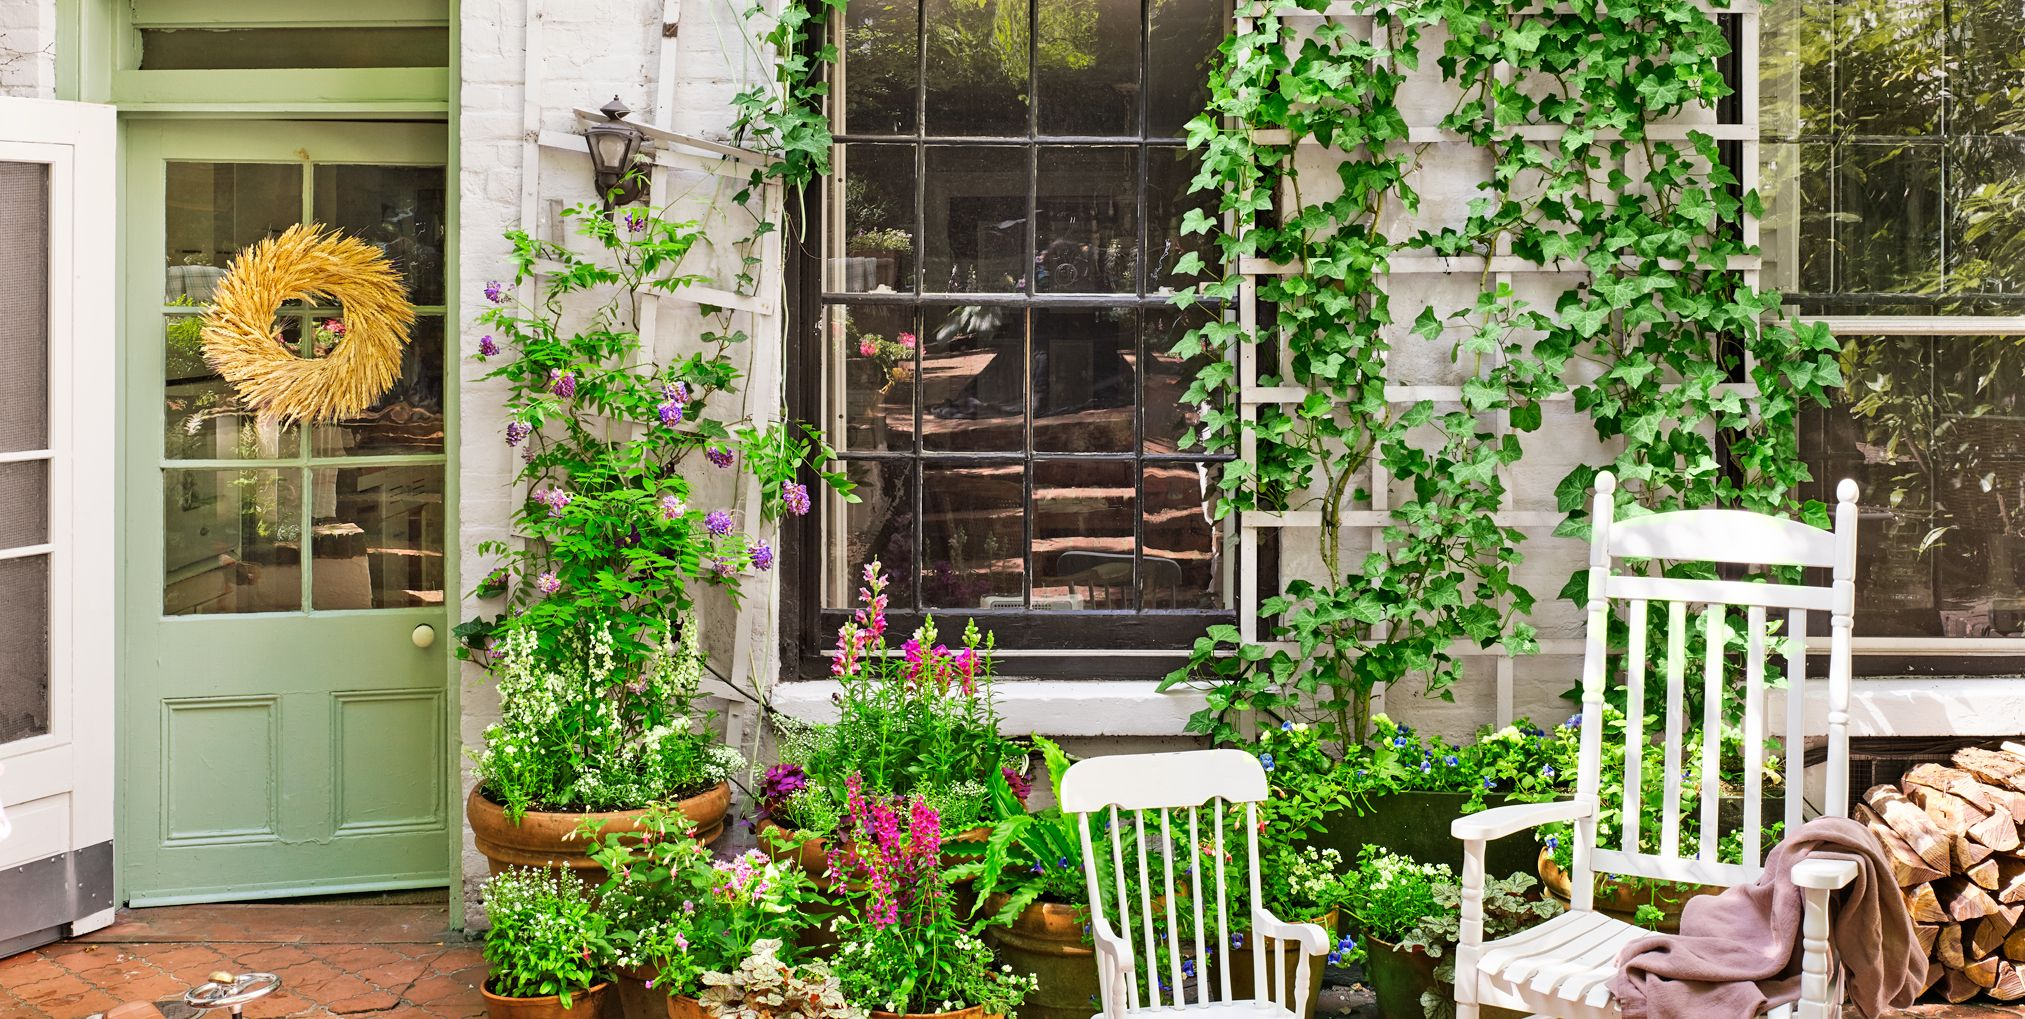 18 Creative Ways to Grow a Garden, Even When You're Short On Space